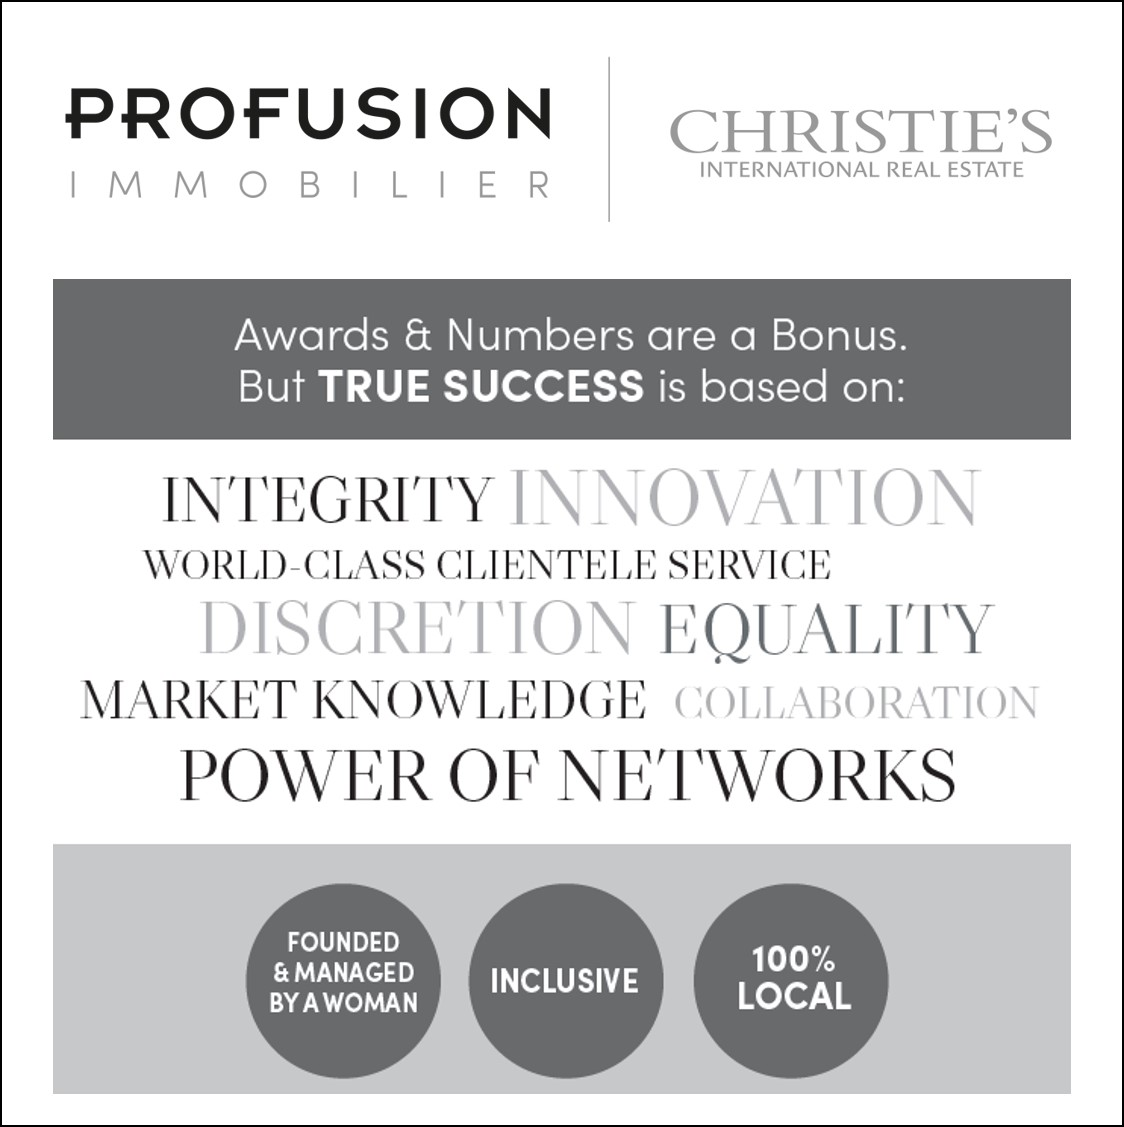 #success #innovation #profusionimmo #profusion #discretion #equality #worldclassservice #100percentlocal #collaboration #powerofnetworks #1 #luxuryrealestate #integrity #truesuccess  Christie's International Real Estate @ChristiesHomespic.twitter.com/YpNGmH2YB6